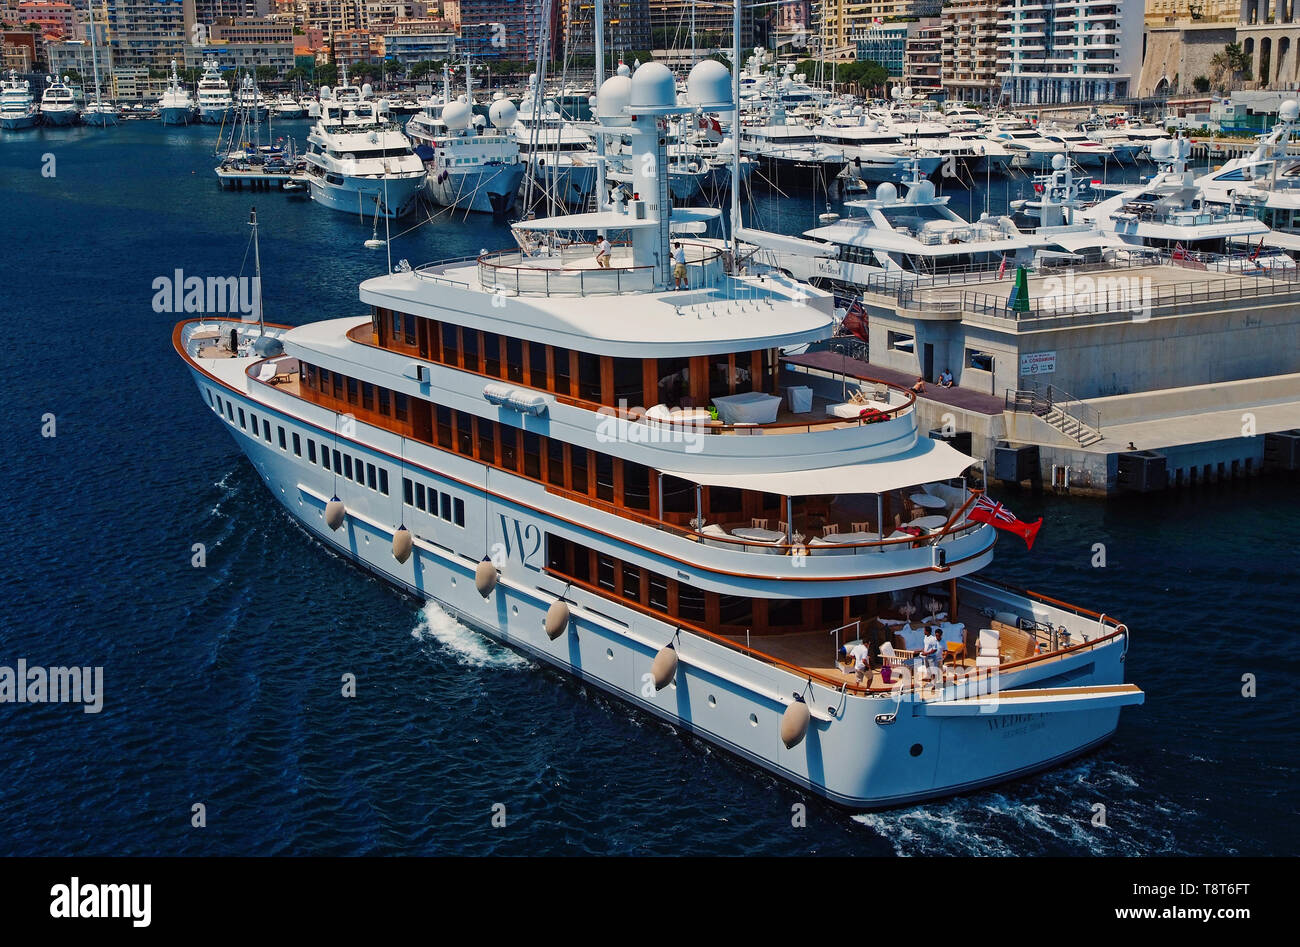 Monte Carlo, Monaco - December 08, 2009: W2 Wedge Too yacht go into sea port. Yacht club in harbor. Sea adventure and boat trips. Pleasure and sport. Vacation and summer wanderlust. - Stock Image